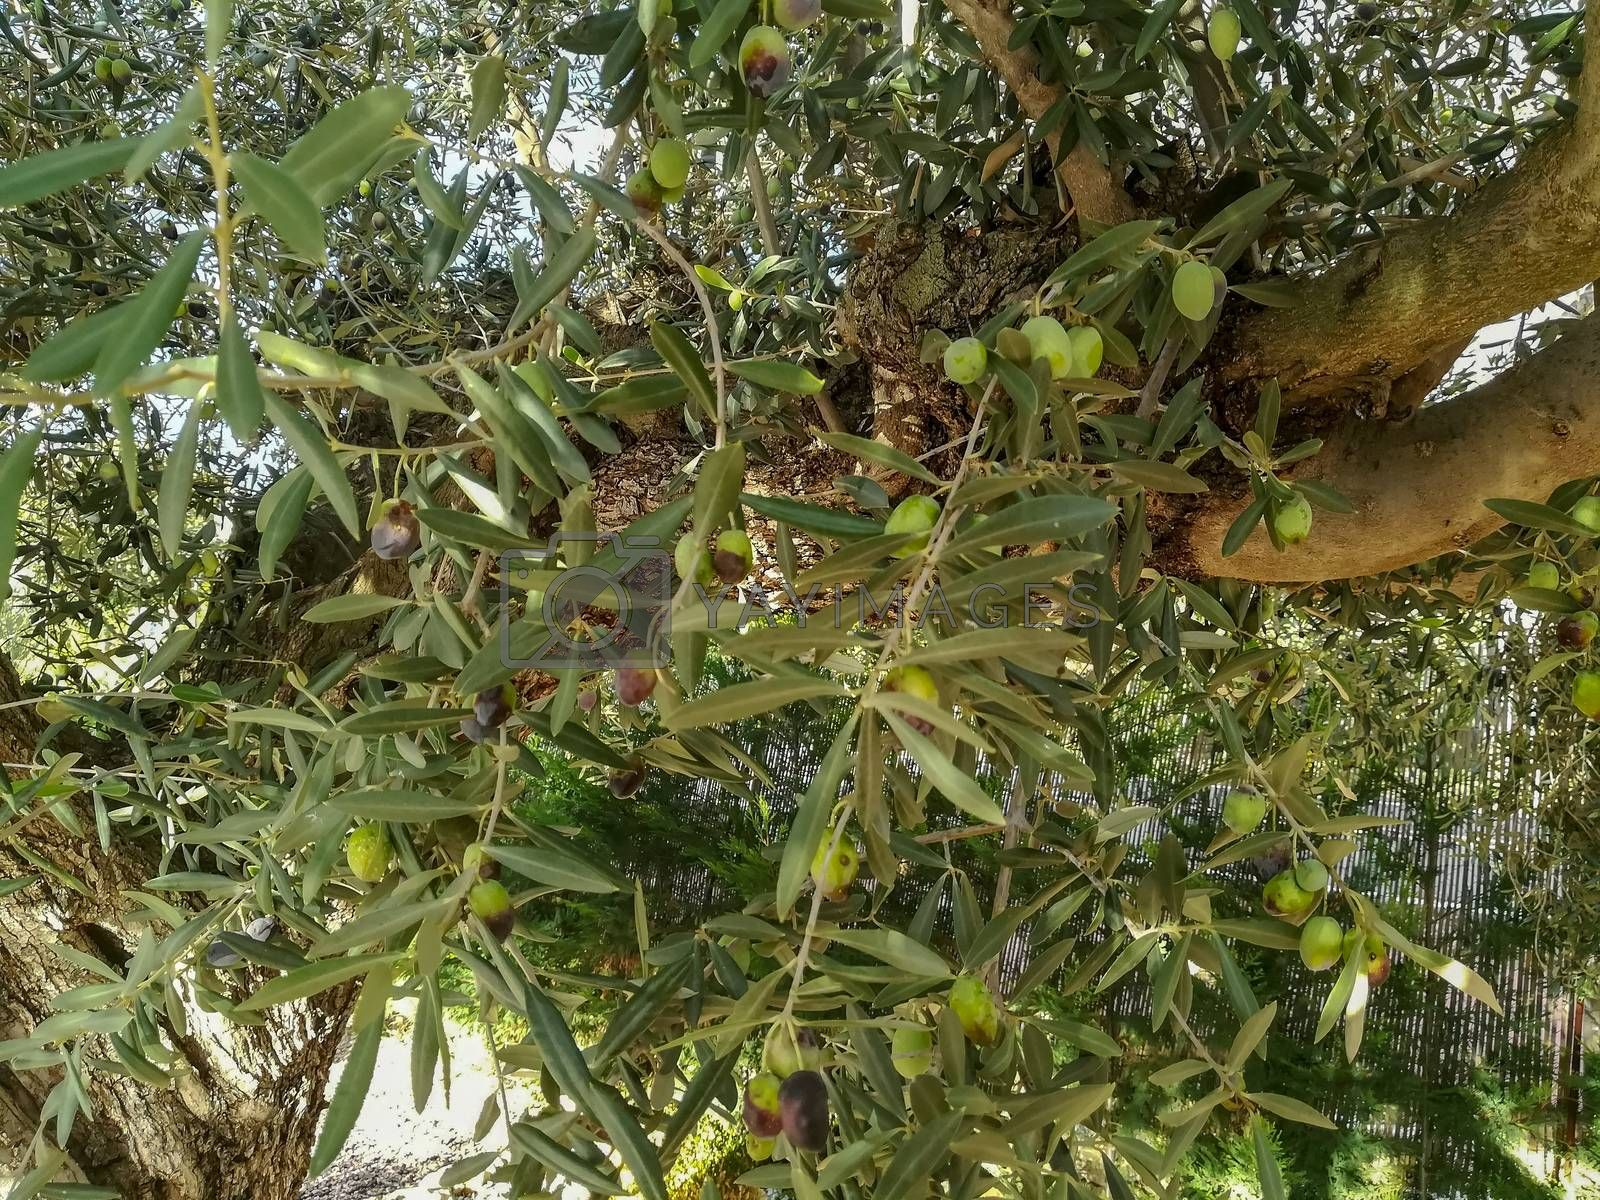 Olive tree in full fruit production